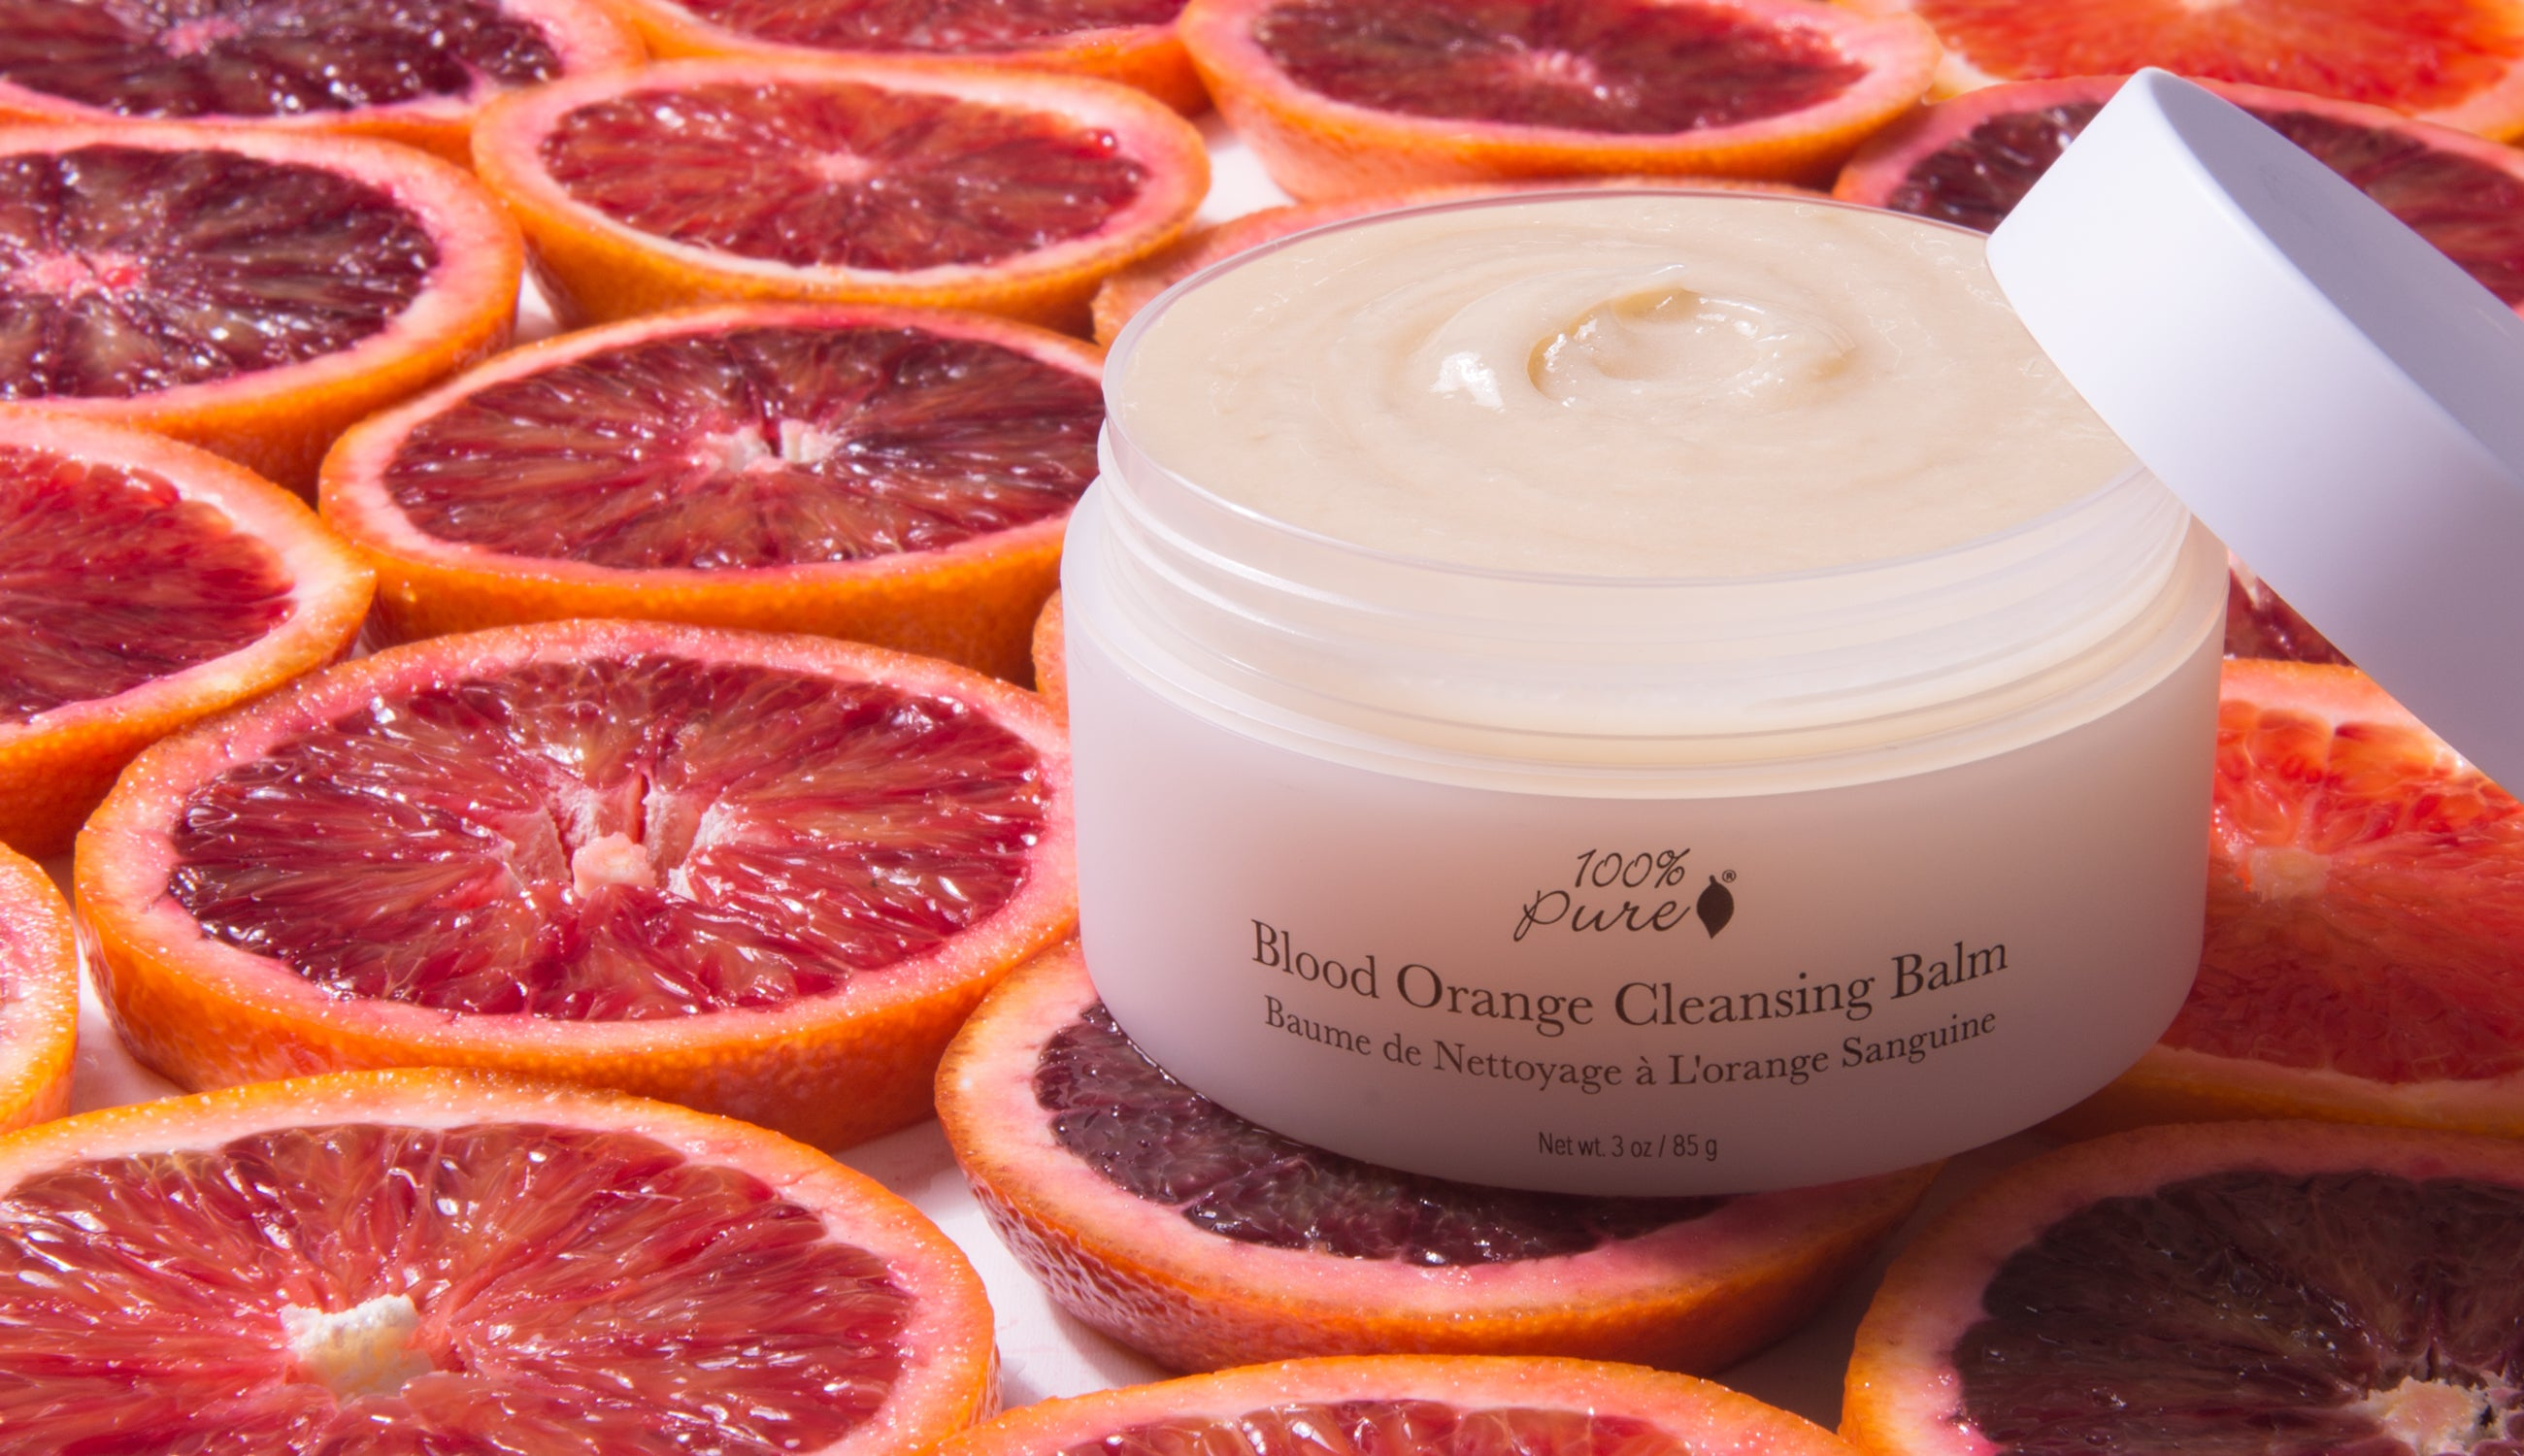 100% PURE Blood Orange Cleansing Balm